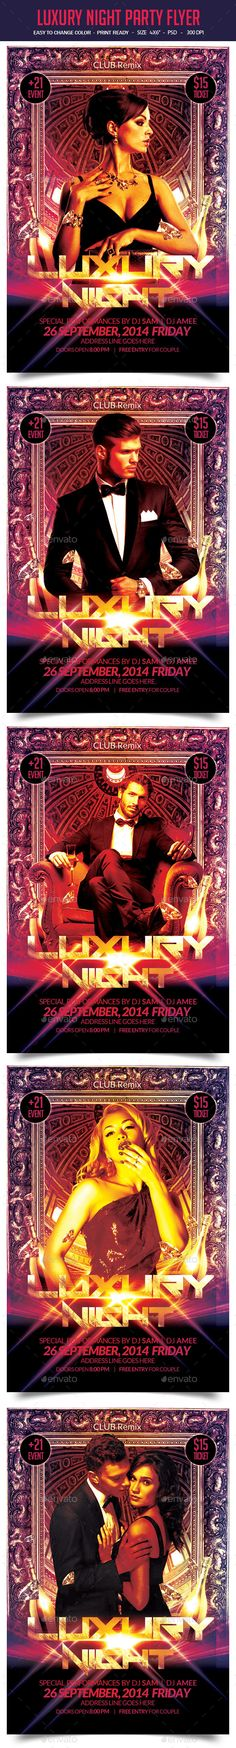 Luxury Party Flyer Template PSD | Buy and Download: http://graphicriver.net/item/luxury-party-flyer-template/8894927?WT.ac=category_thumb&WT.z_author=studiorgb&ref=ksioks